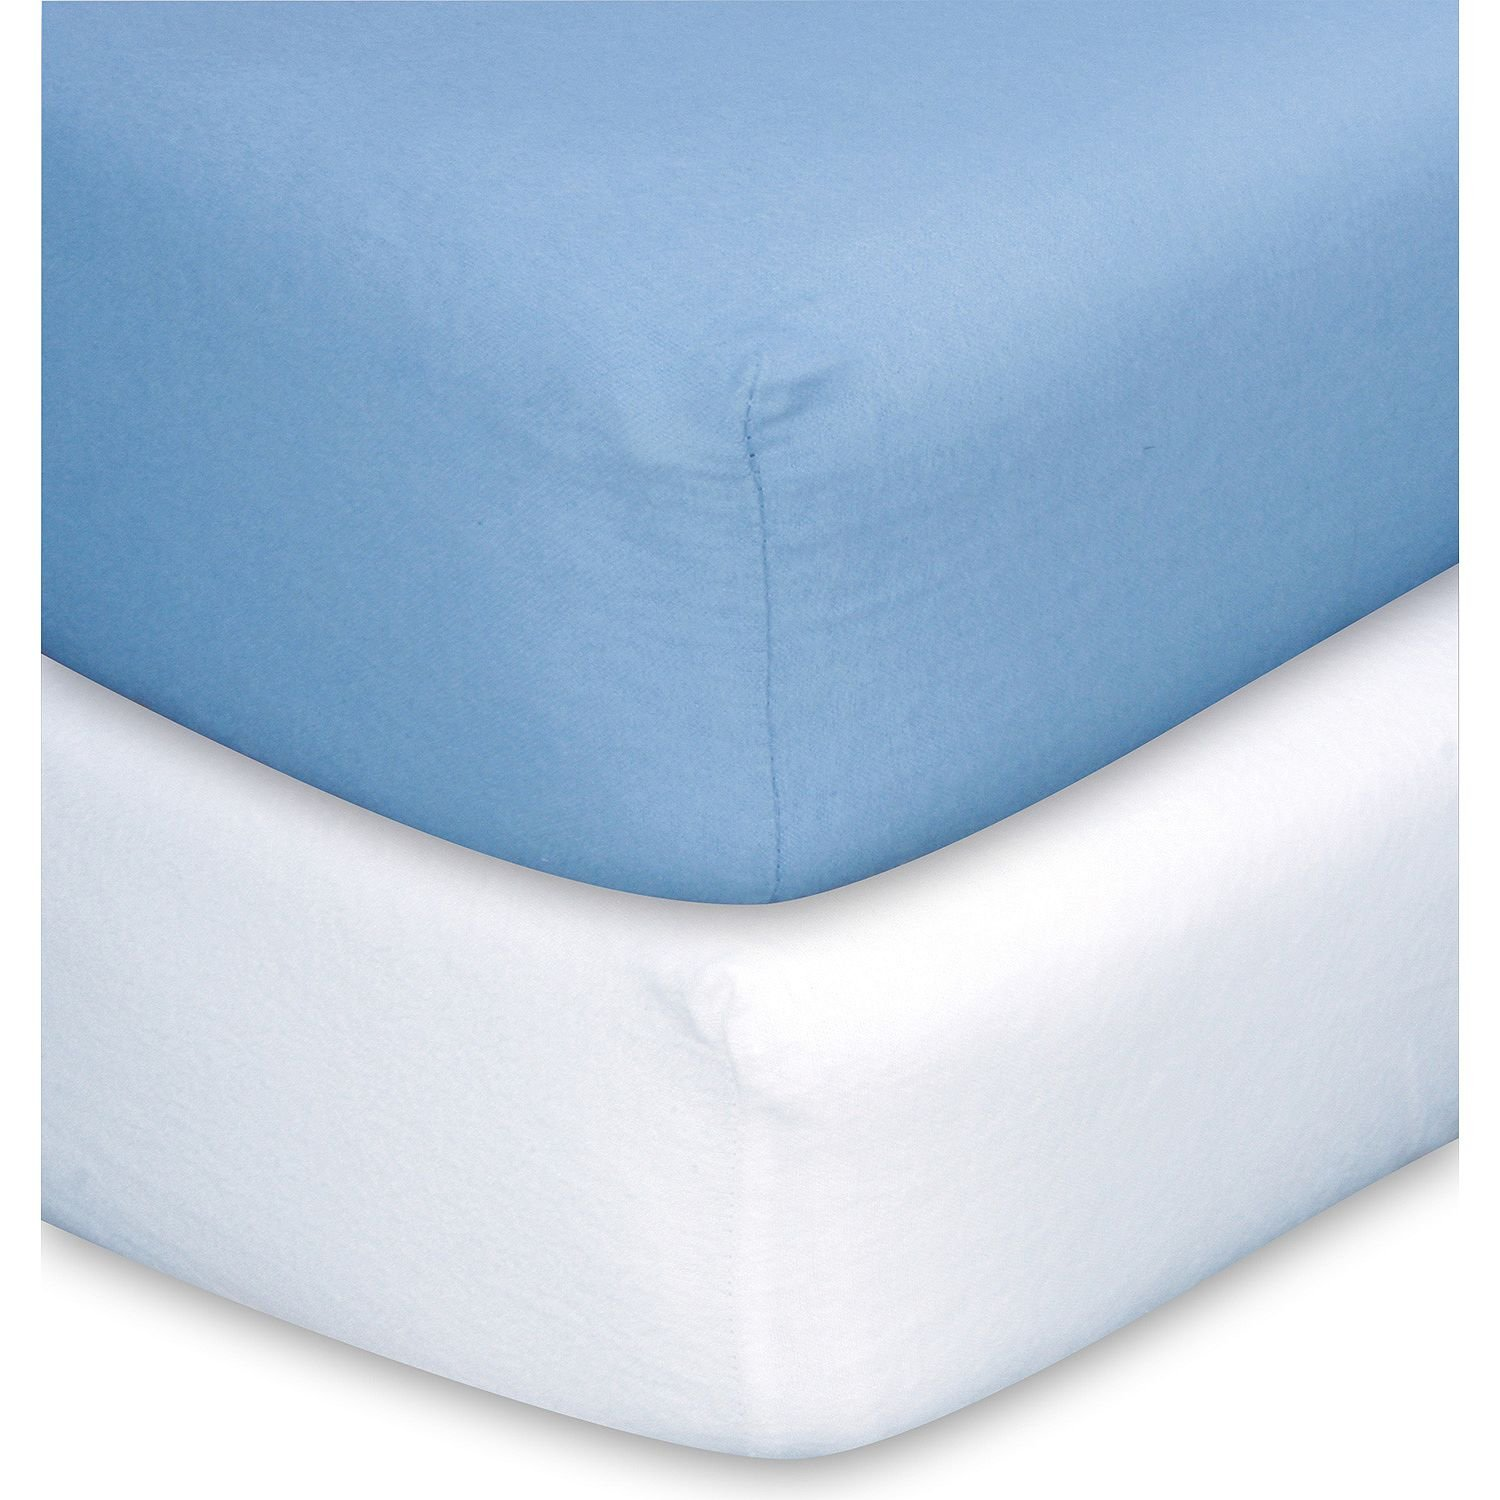 Trend Lab Crib Sheets Blue & White- Pack of 5 - (Original from manufacturer - Bulk Discount available)